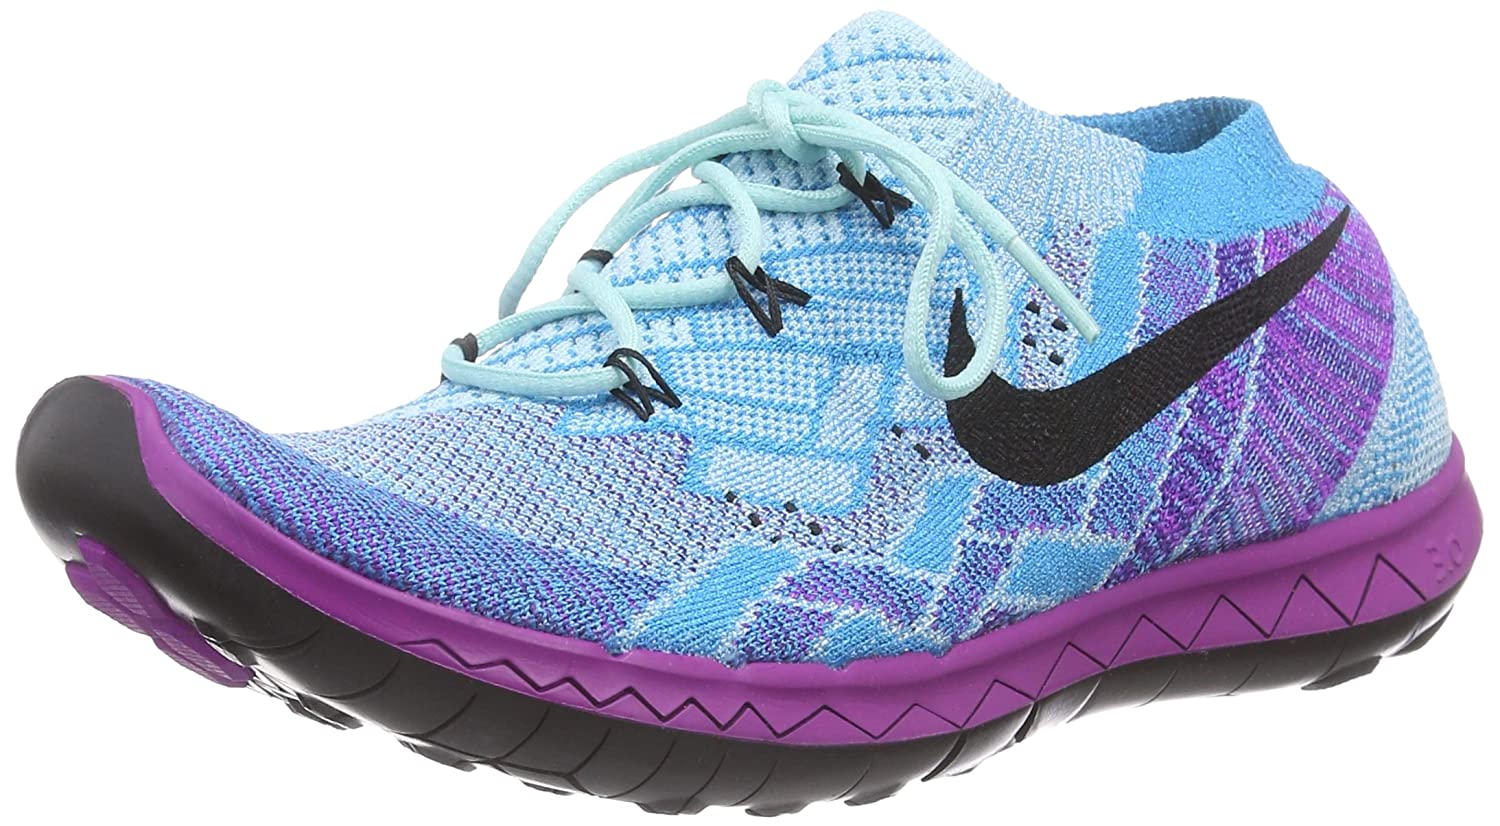 hot sale online d0a5b d9273 Nike Women s Free 3.0 Flyknit Running Shoes (Copa Black Vivid Purple Blue)  (7)  Amazon.ca  Shoes   Handbags